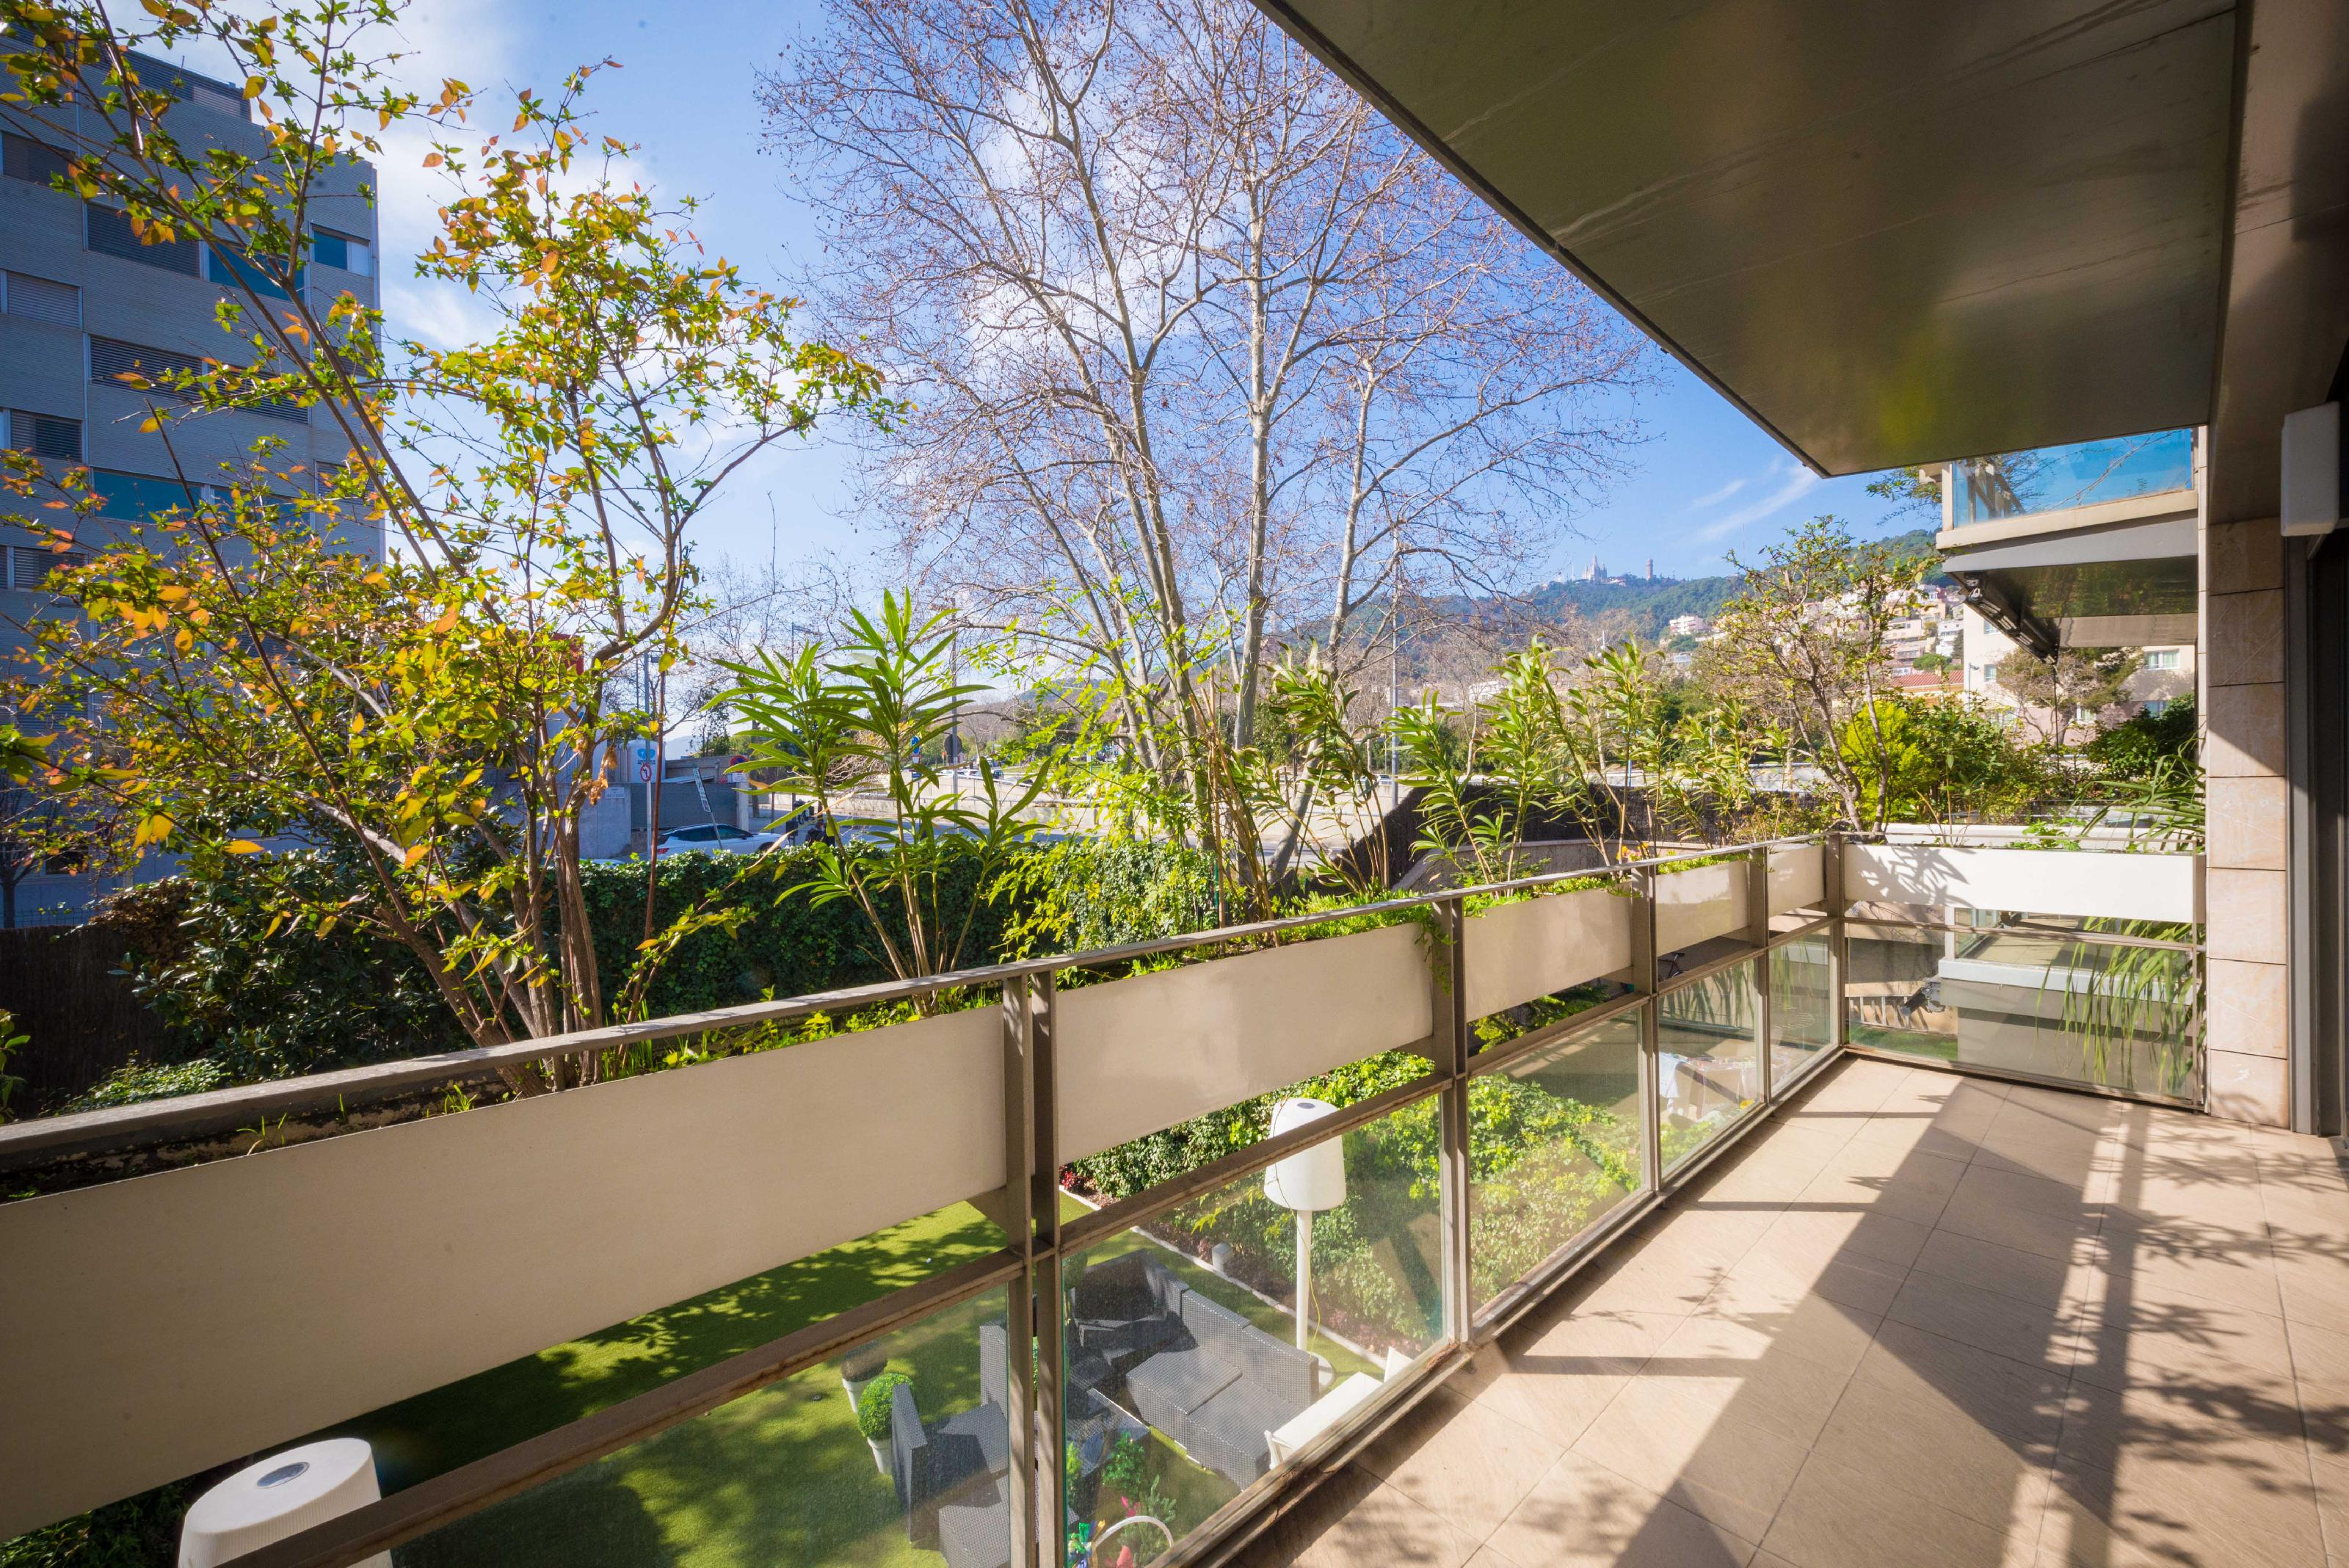 246682 Flat for sale in Gràcia, Vallcarca and Els Penitents 1